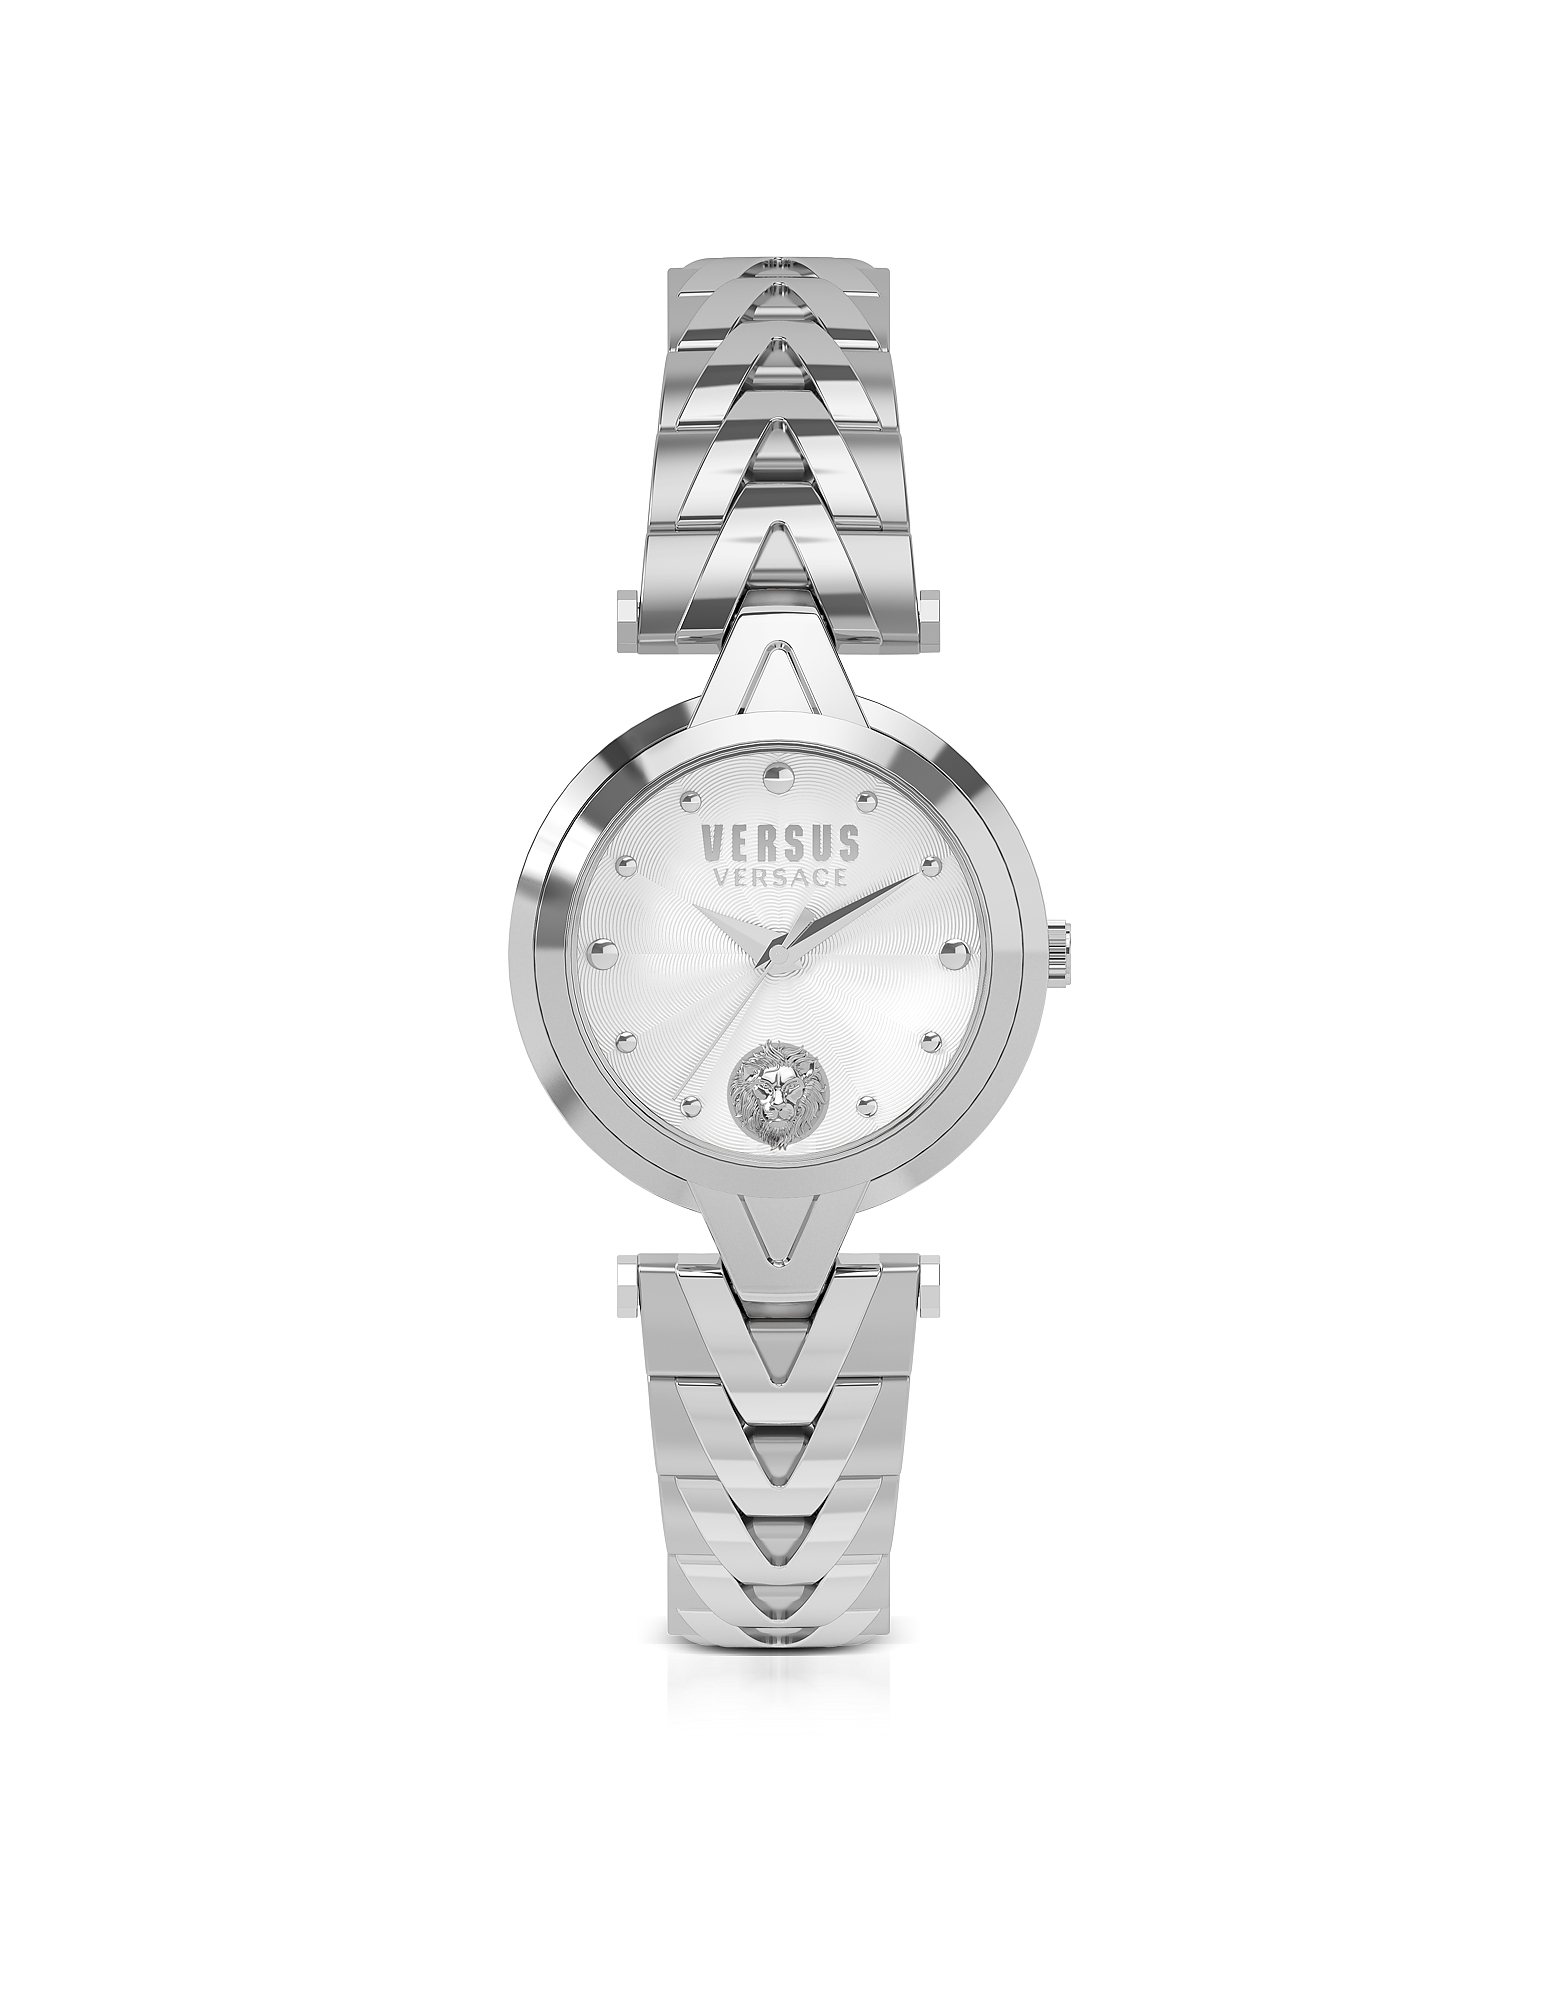 Versace Versus Women's Watches, V Versus Silver Stainless Steel Women's Bracelet Watch